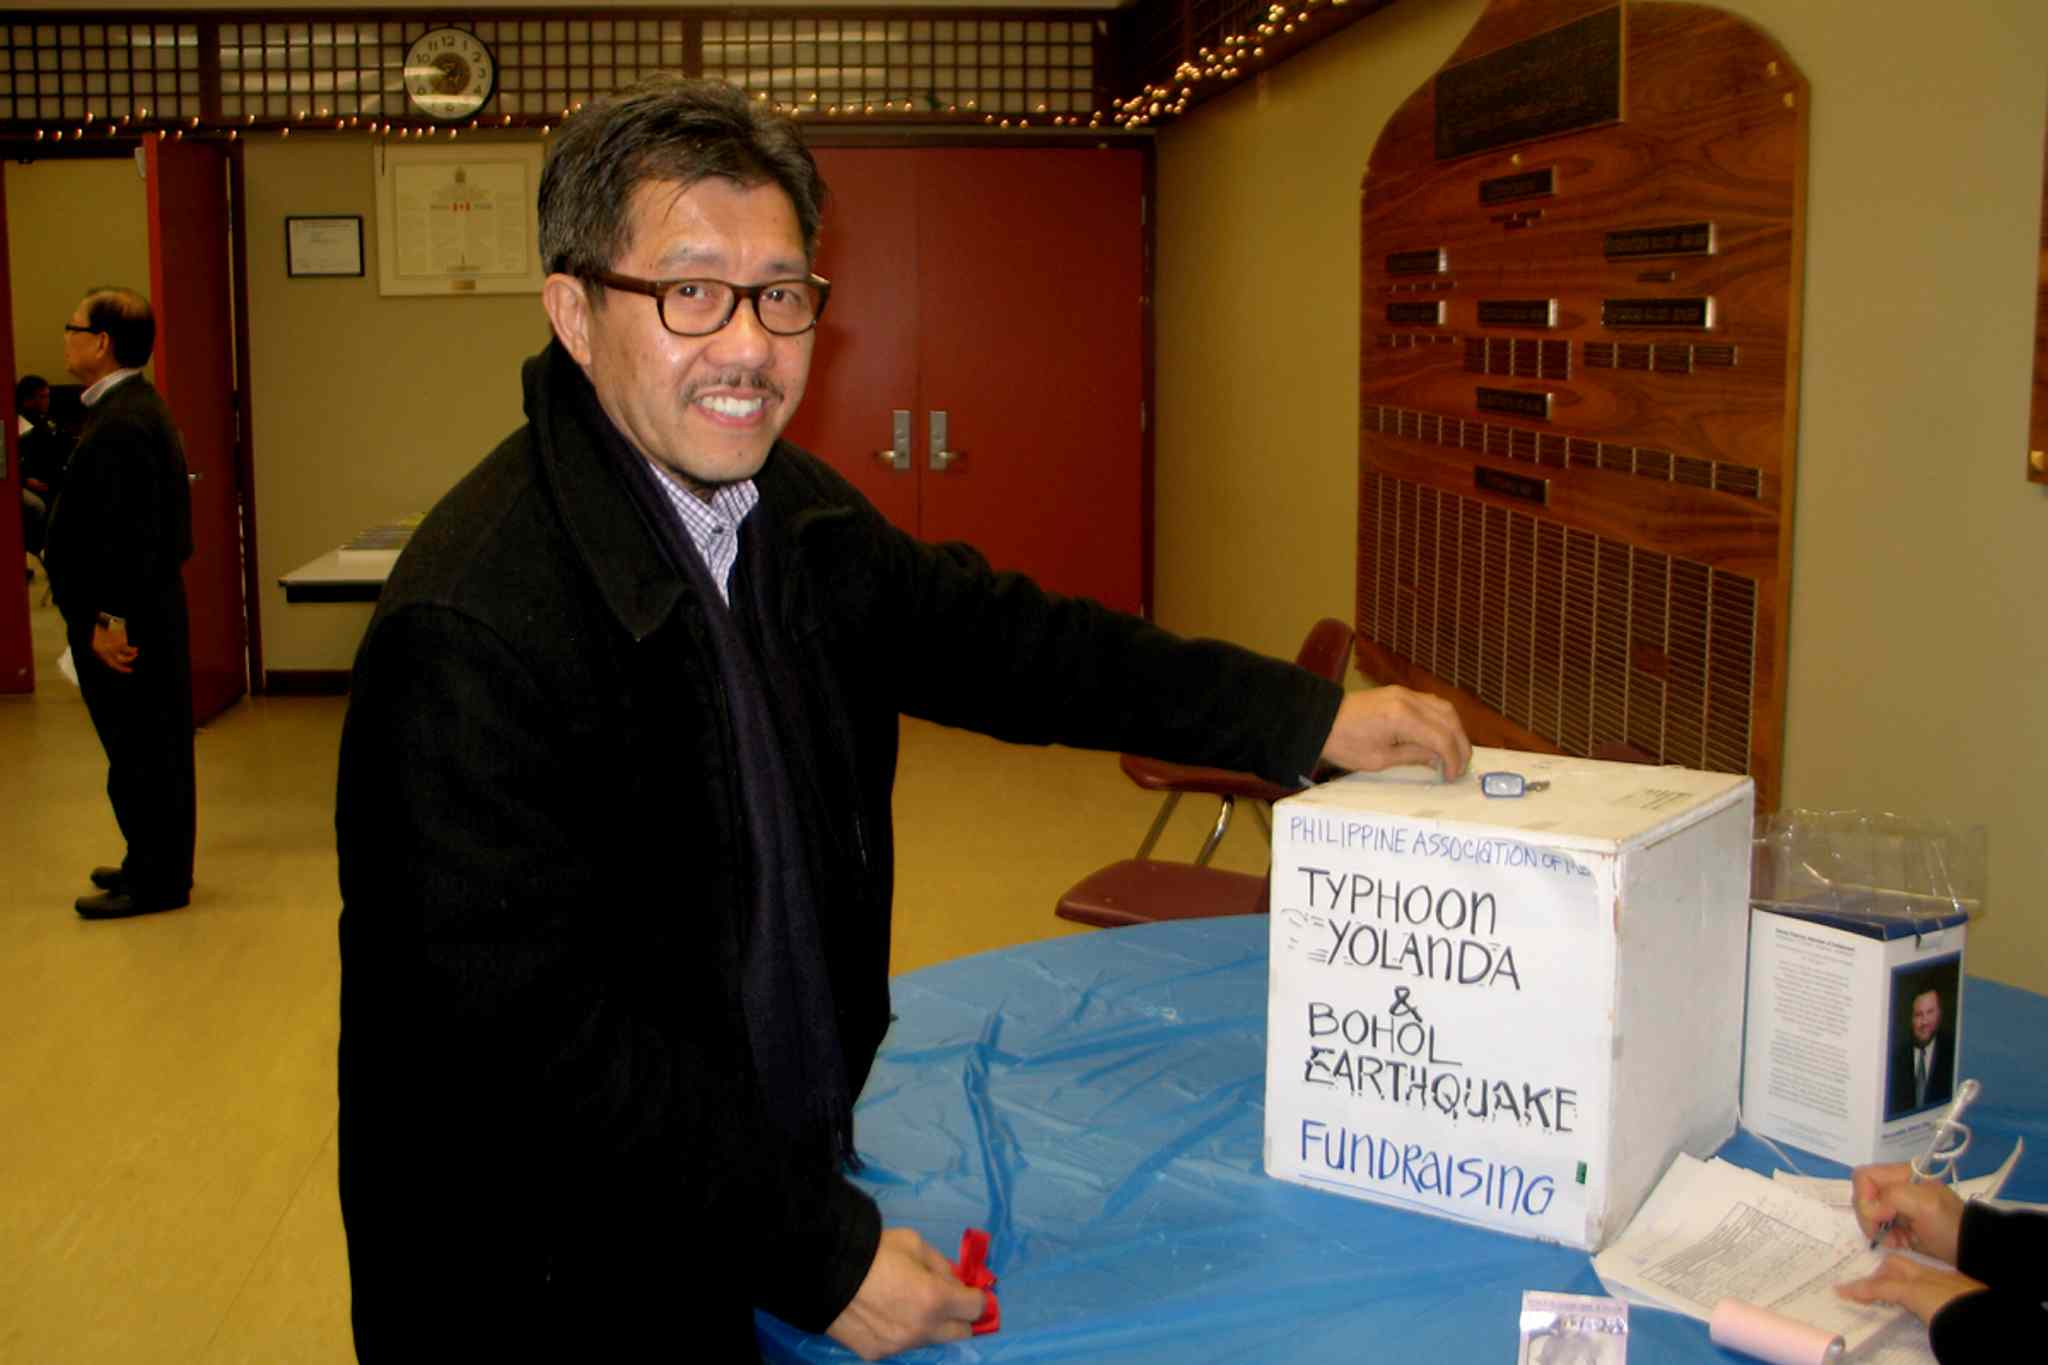 Robert Viray, 59, donating money to Typhoon Haiyan disaster relief. Viray was one of several Winnipeggers at a prayer vigil for typhoon victims at the Philippine Canadian Centre of Manitoba on Nov. 13.